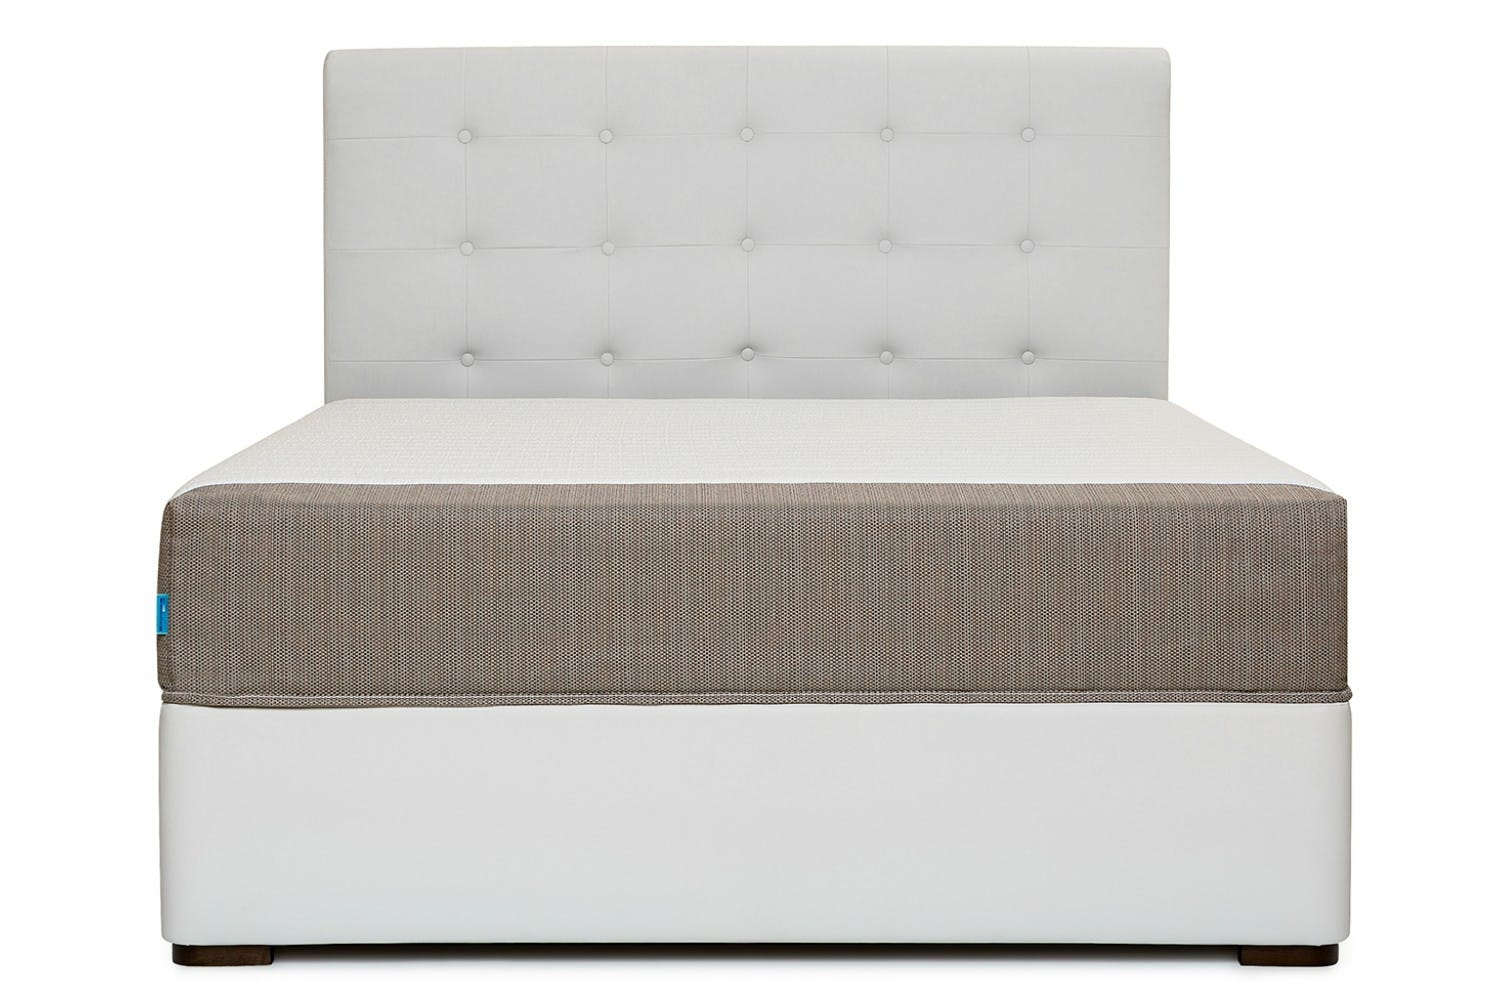 Duval Bed   Tufted Button   White   4ft6